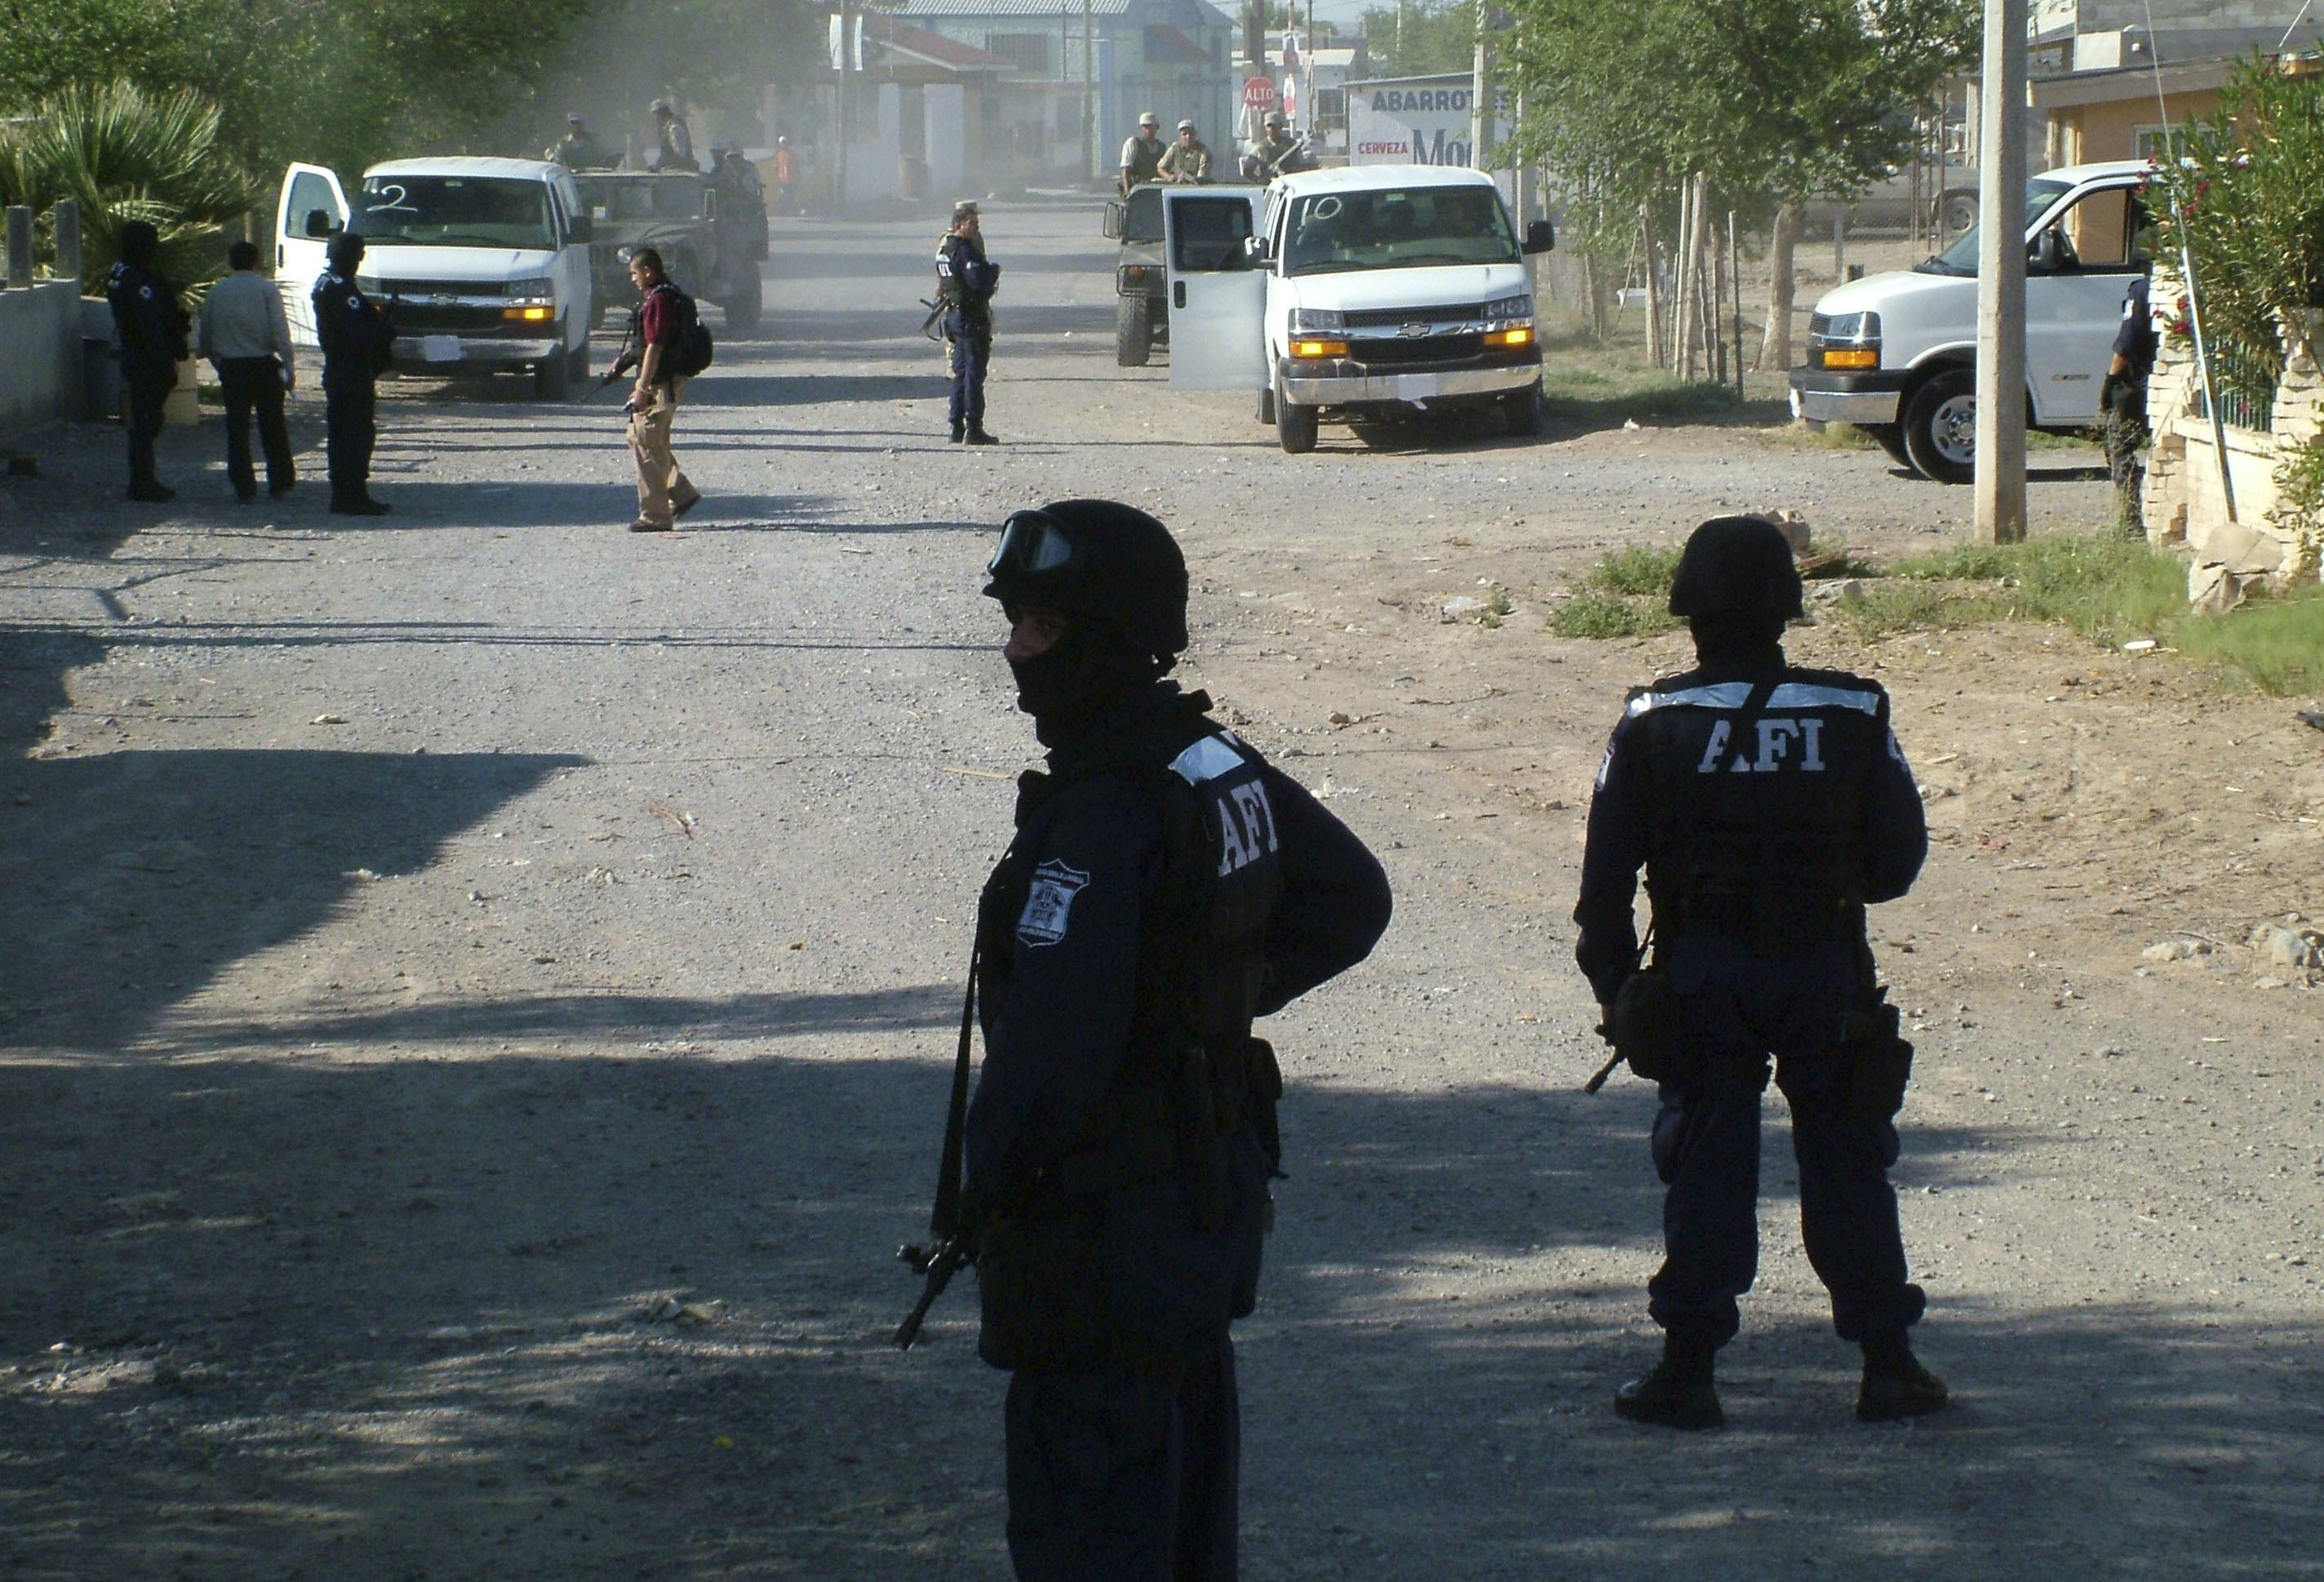 Members of Mexico's Federal Investigation agency, AFI, as well as Mexican army soldiers guard a street during a raid  to search for members of the Juarez drug cartel on the outskirts of Ciudad Juarez, Mexico on Wednesday June 14, 2006. Mexico's drug wars are becoming a central issue in the country's July 2 presidential race, with one candidate calling for U.S.-style trials and extraditions and another saying crime can only be solved with more jobs and social programs.(AP Photo/Raymundo Ruiz)